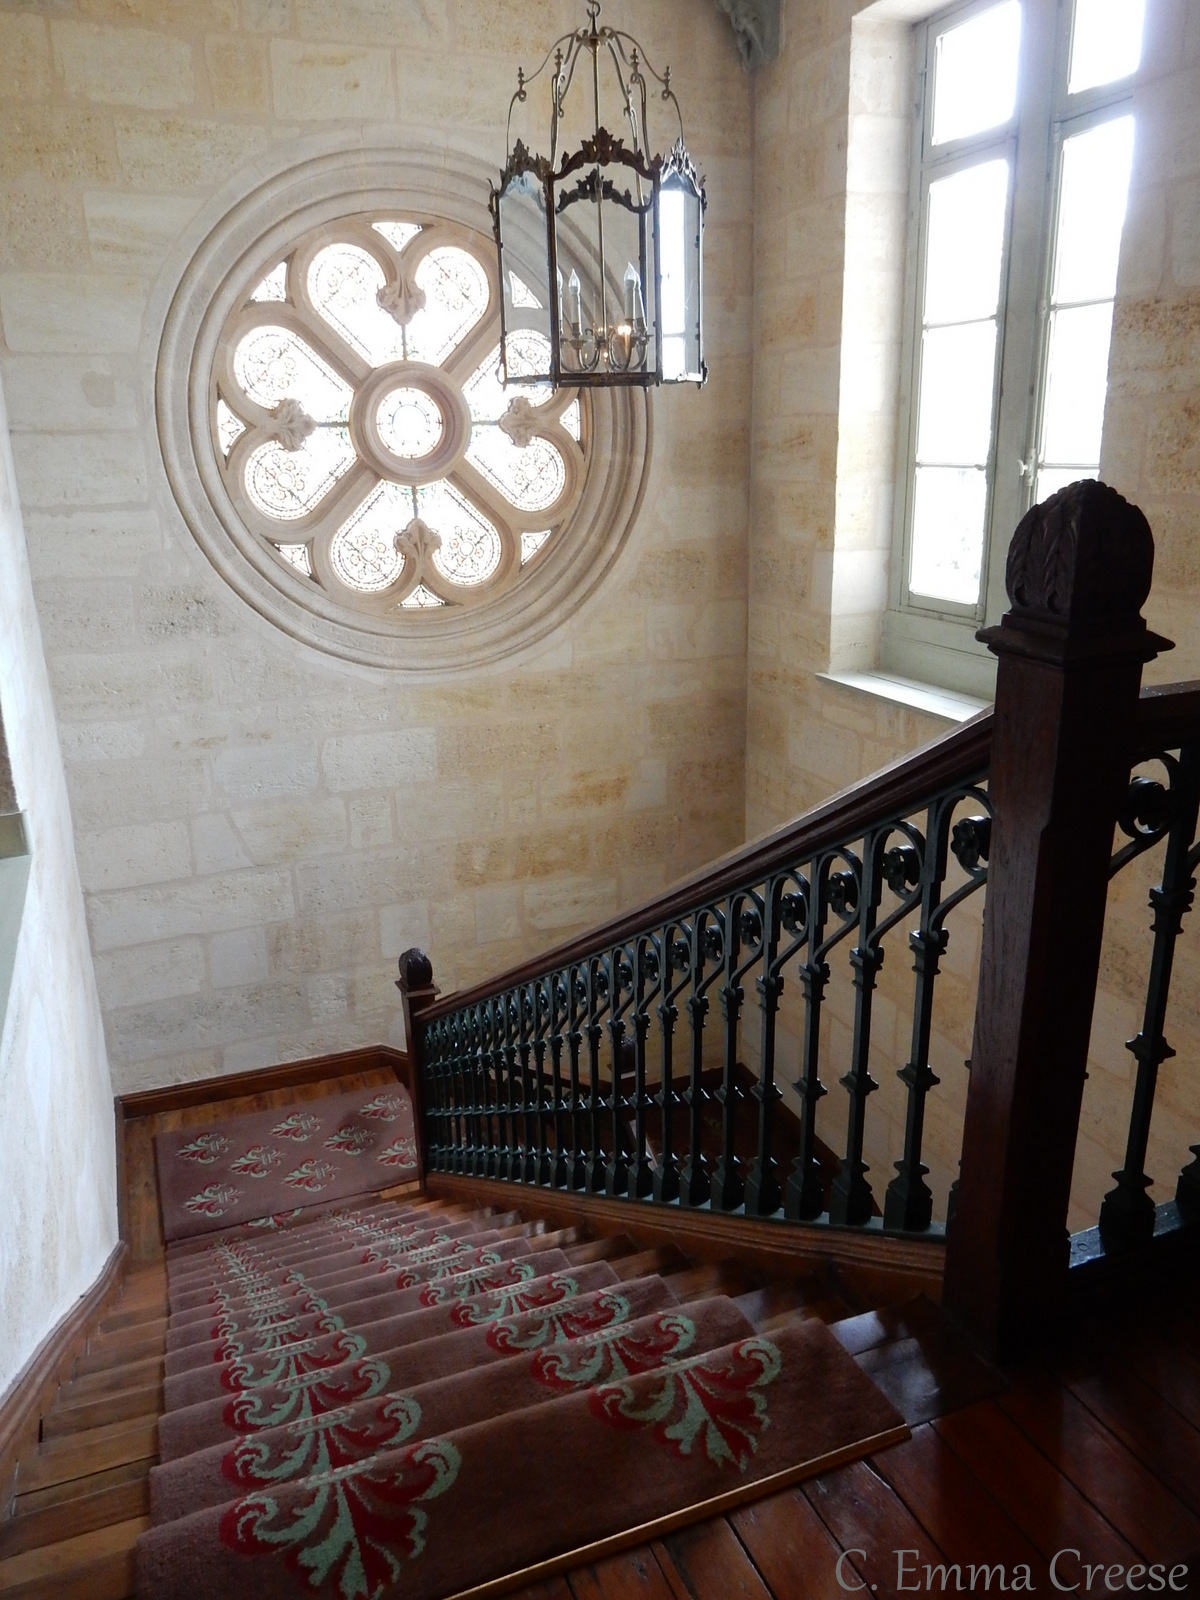 Chateau Pape Clement - a dream experience in Bordeaux